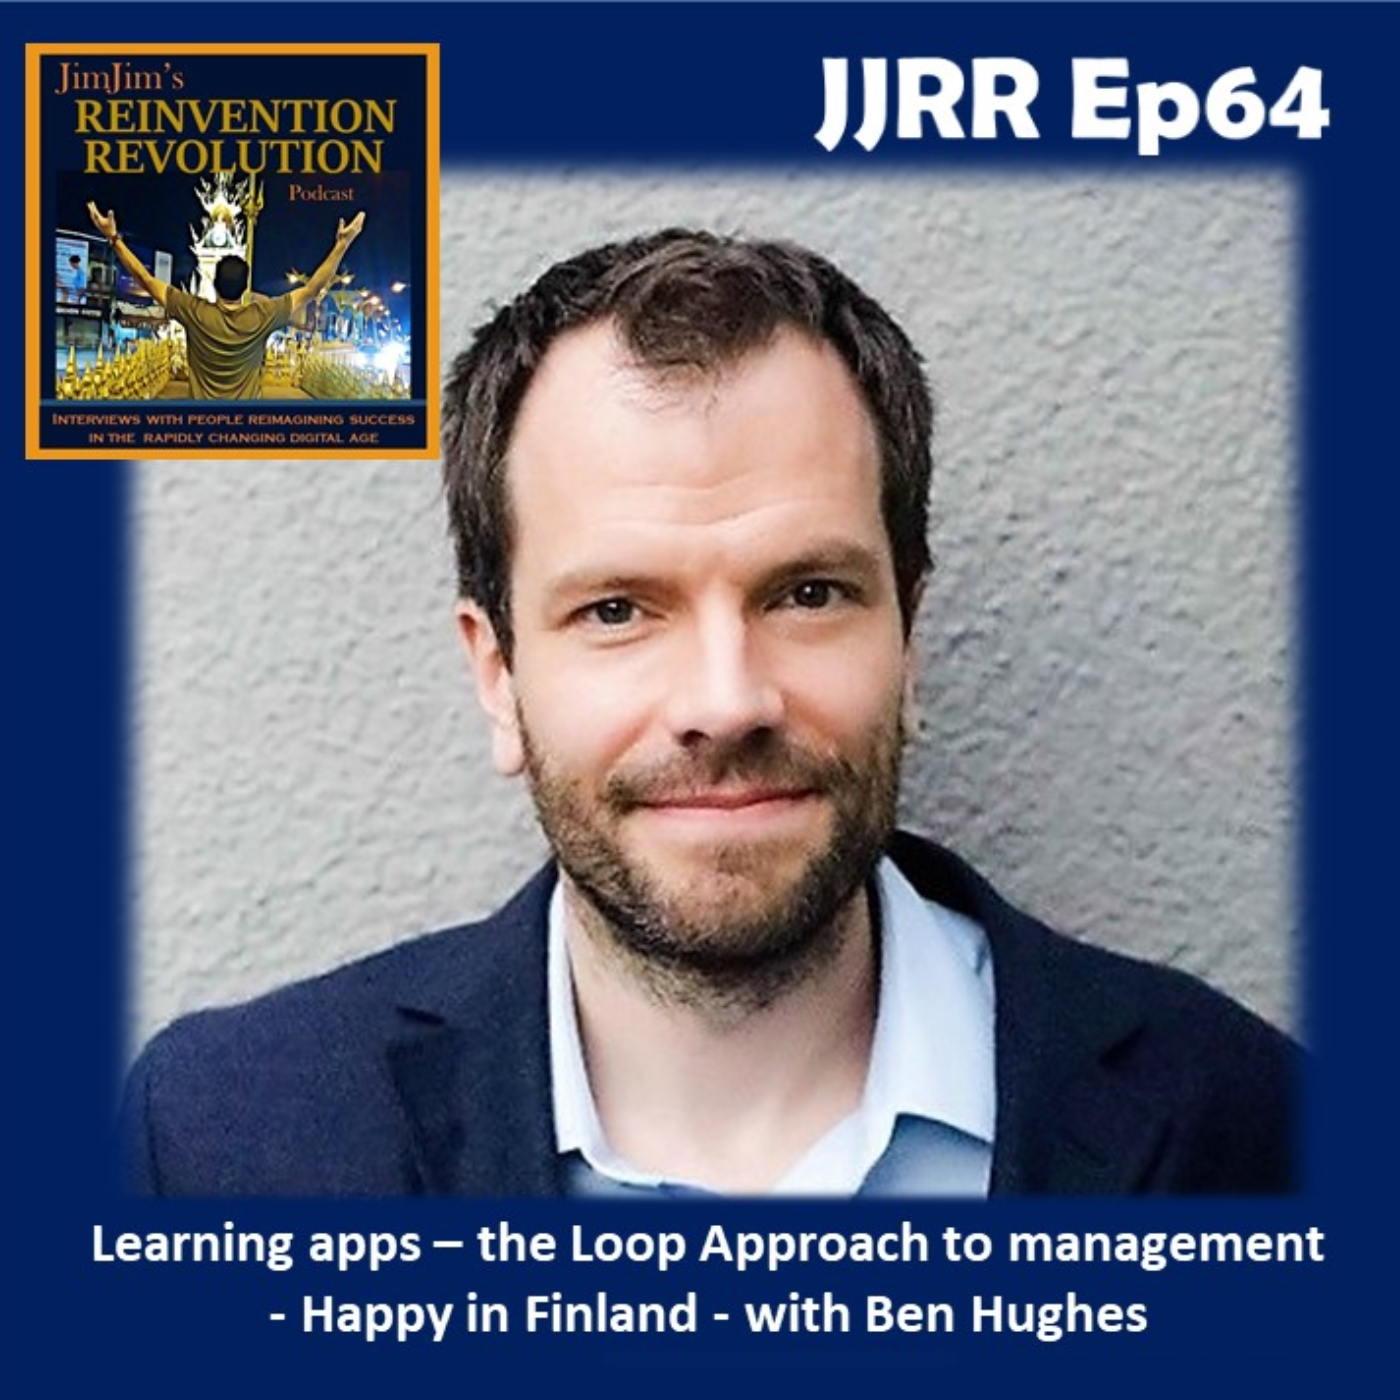 JJRR 64 Learning apps, the Loop Approach to management – Happy in Finland – with Ben Hughes